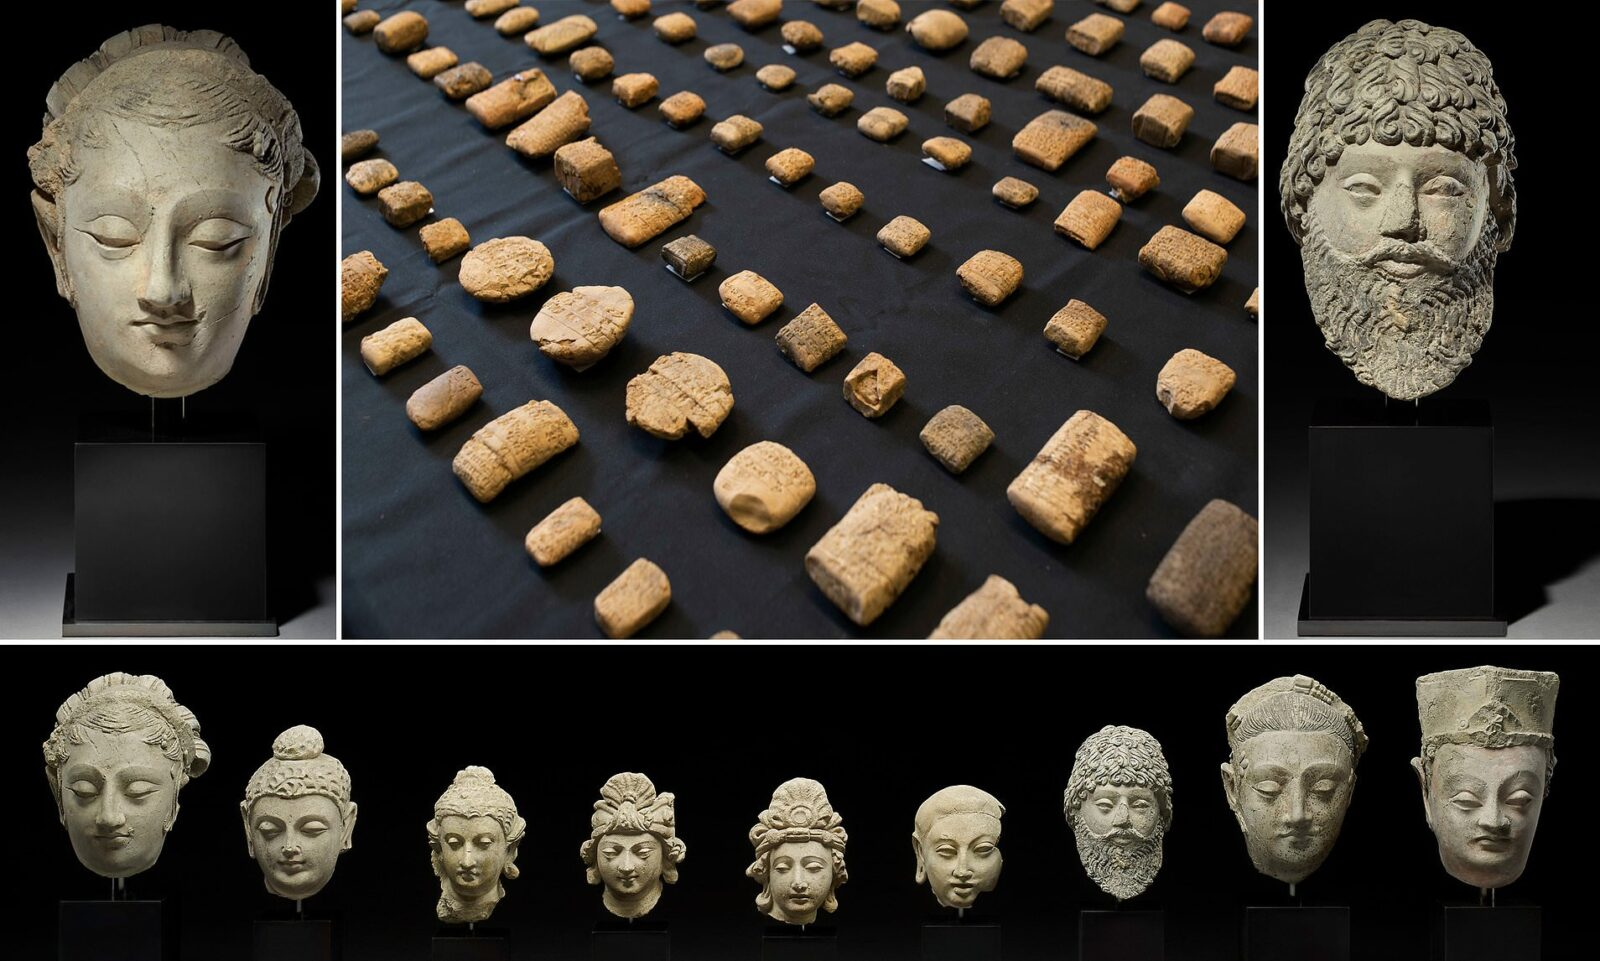 33 Artifacts valued at $1.8 million will be returned to Afghanistan